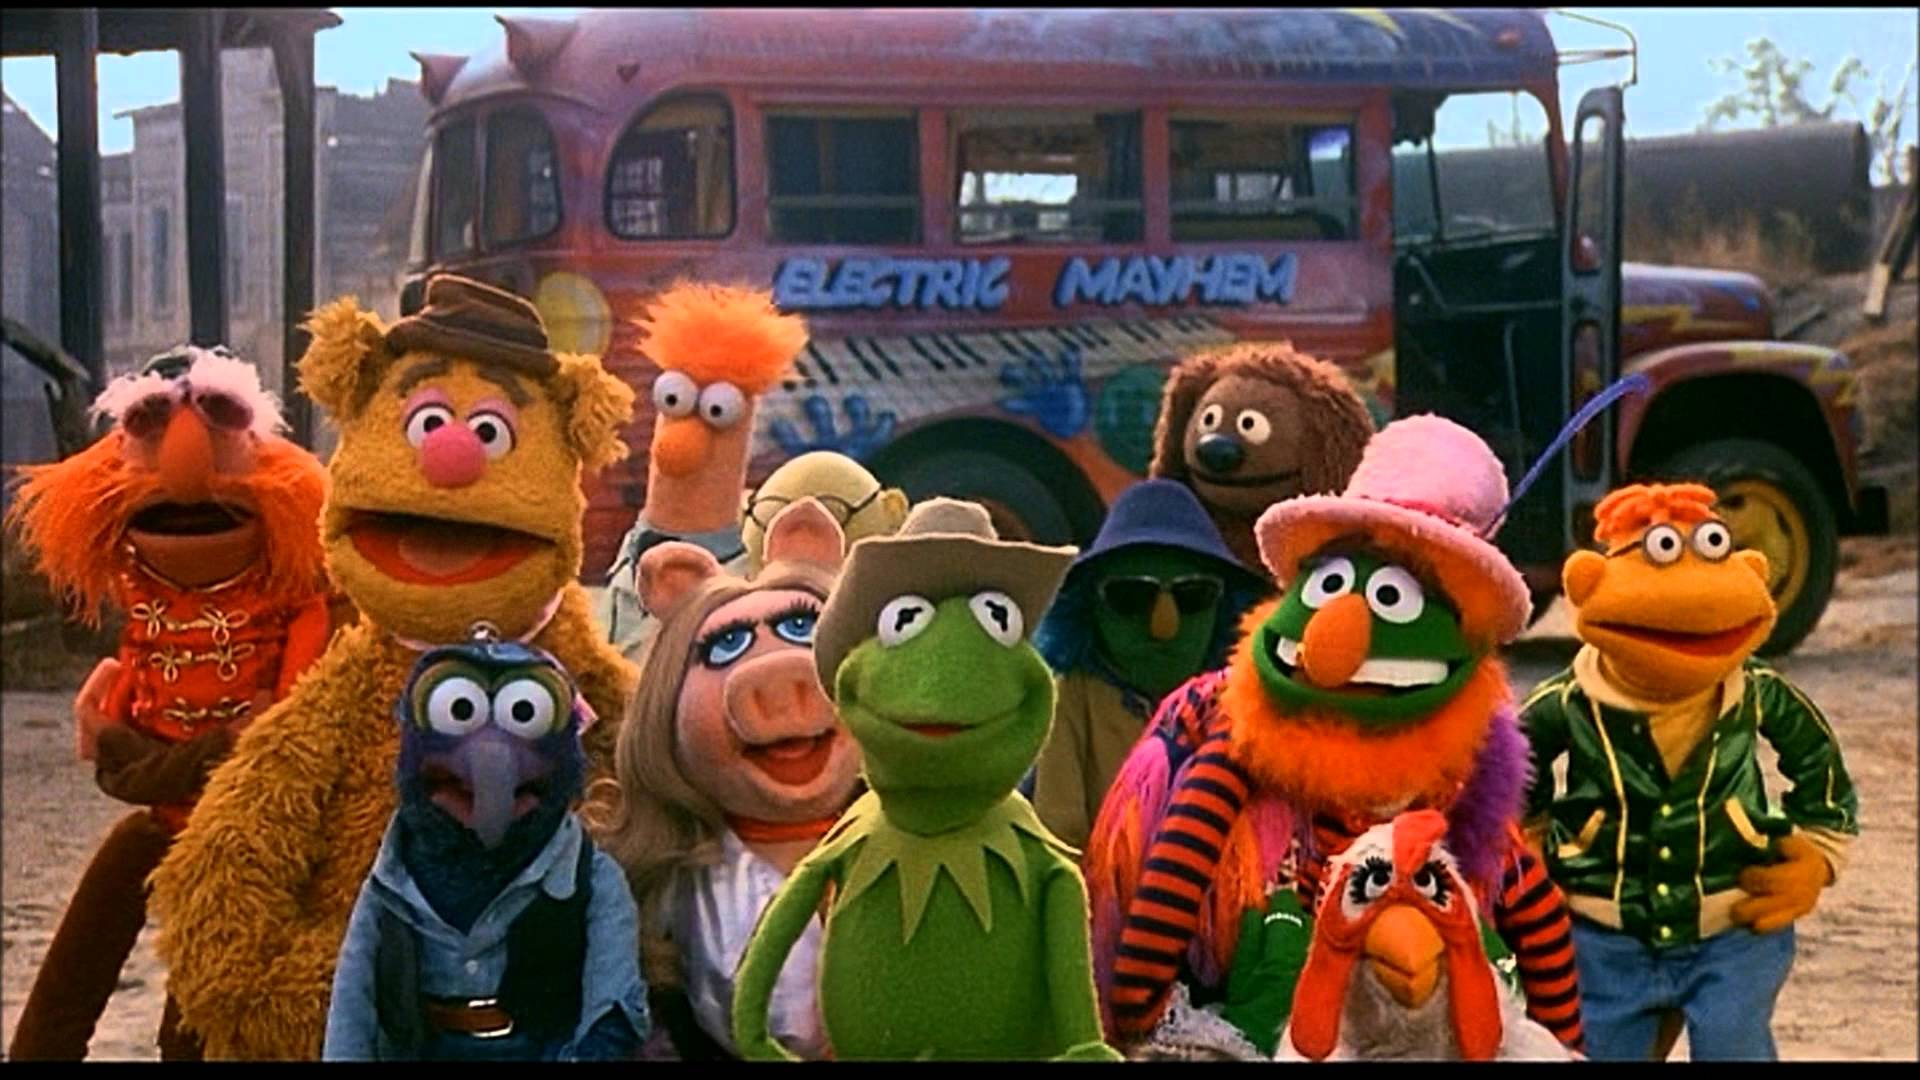 Images of The Muppets Cast - #rock-cafe